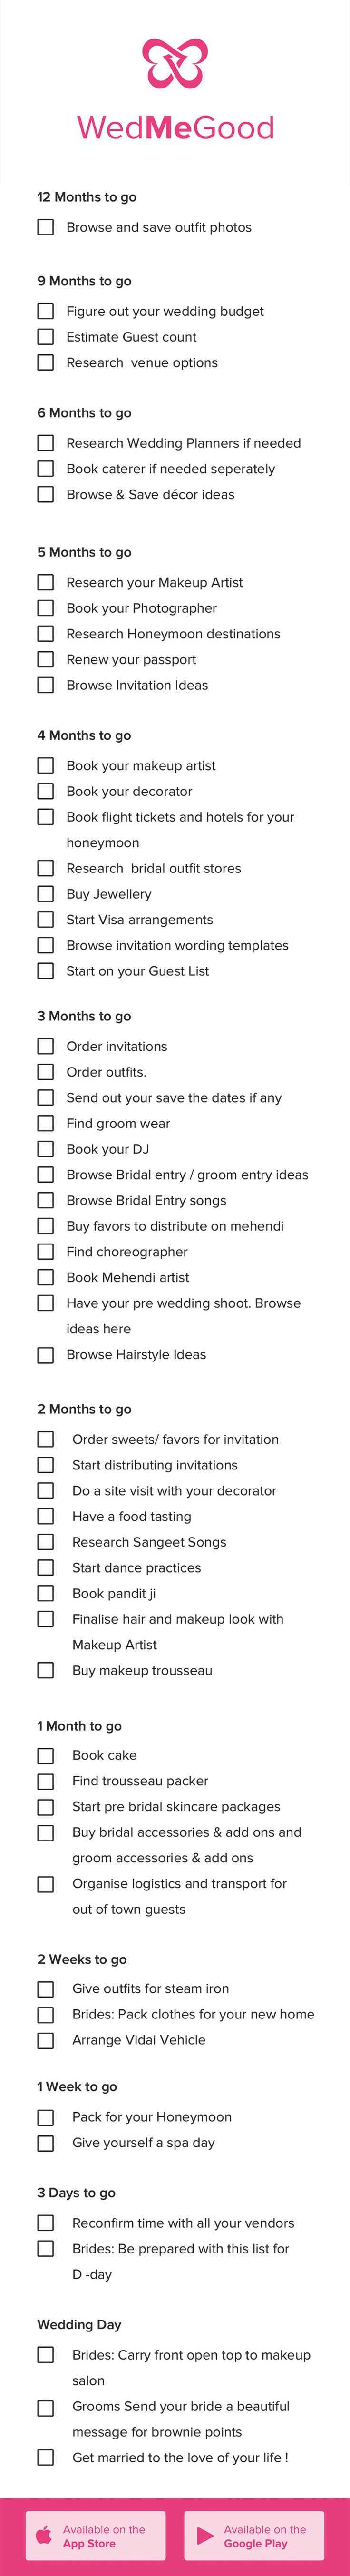 Indian Wedding Checklist . WedMeGood Checklist - Things to Do 1 Year Checklist…